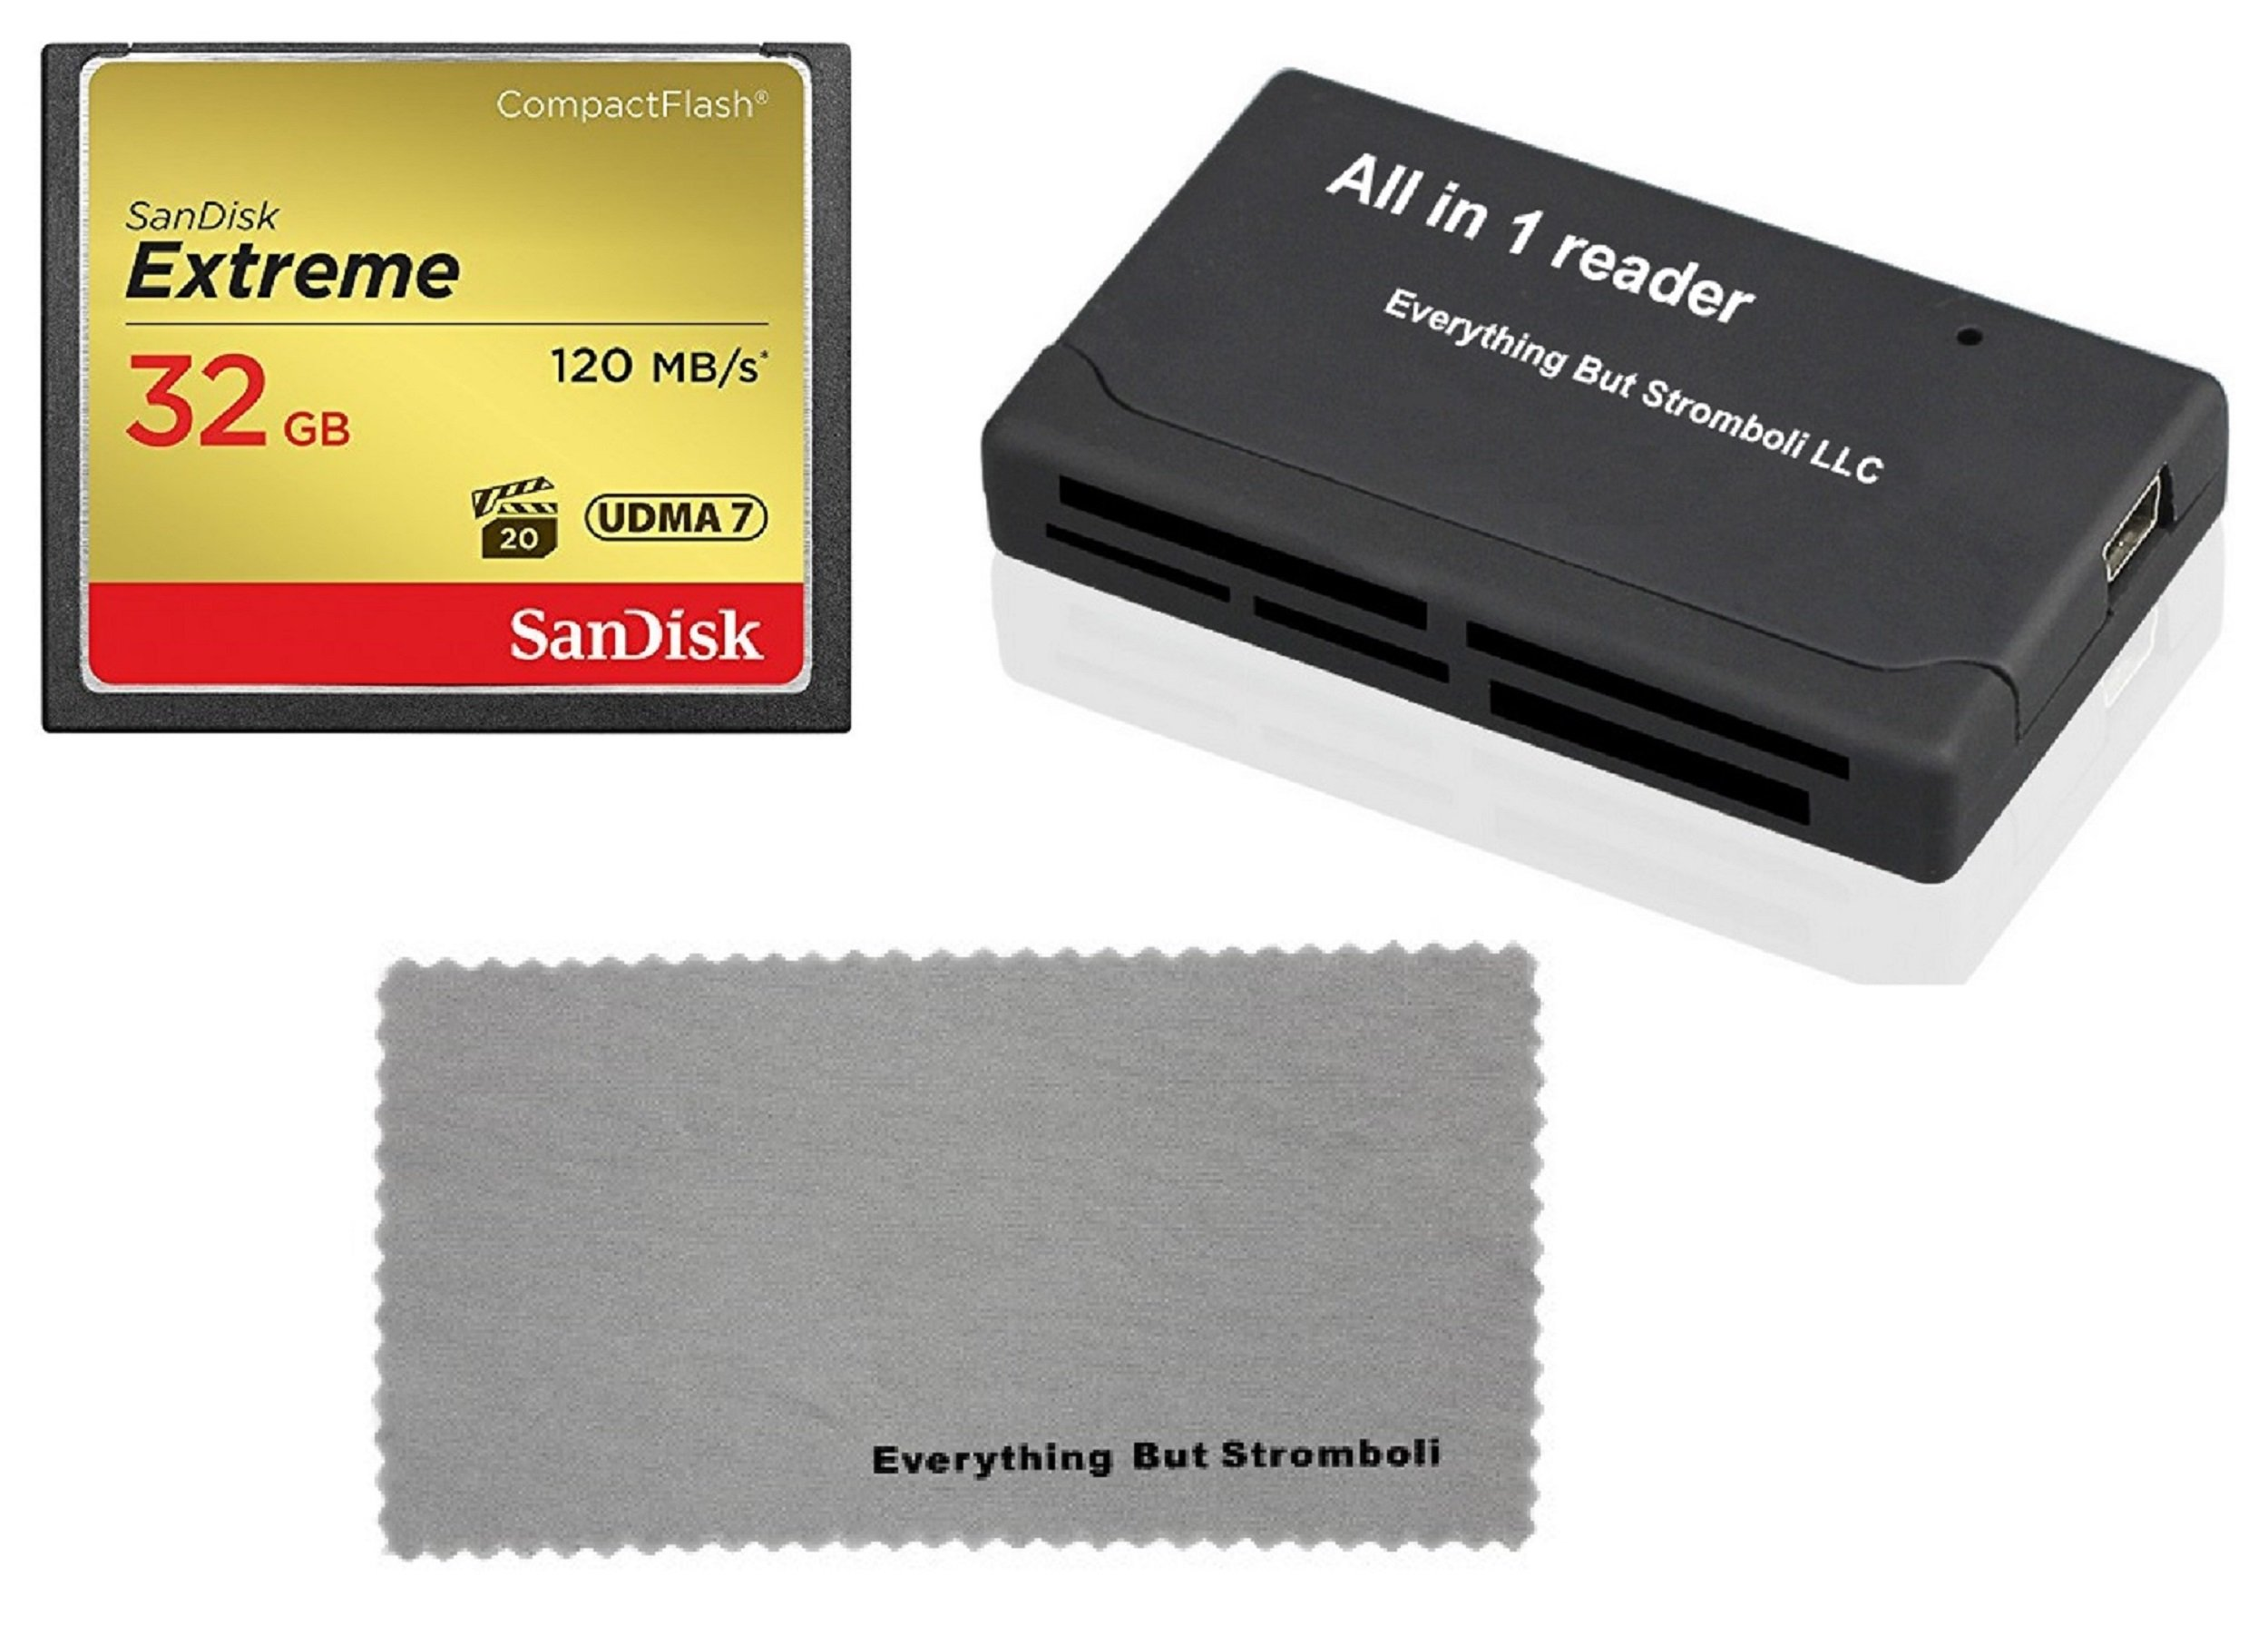 SanDisk Extreme 32GB CompactFlash Memory Card works with Canon EOS 7D Mark II Digital DSLR Camera HD UDMA 7 (SDCFXSB-032G-G46) with Everything But Stromboli Combo Microfiber Cloth and Combo Reader